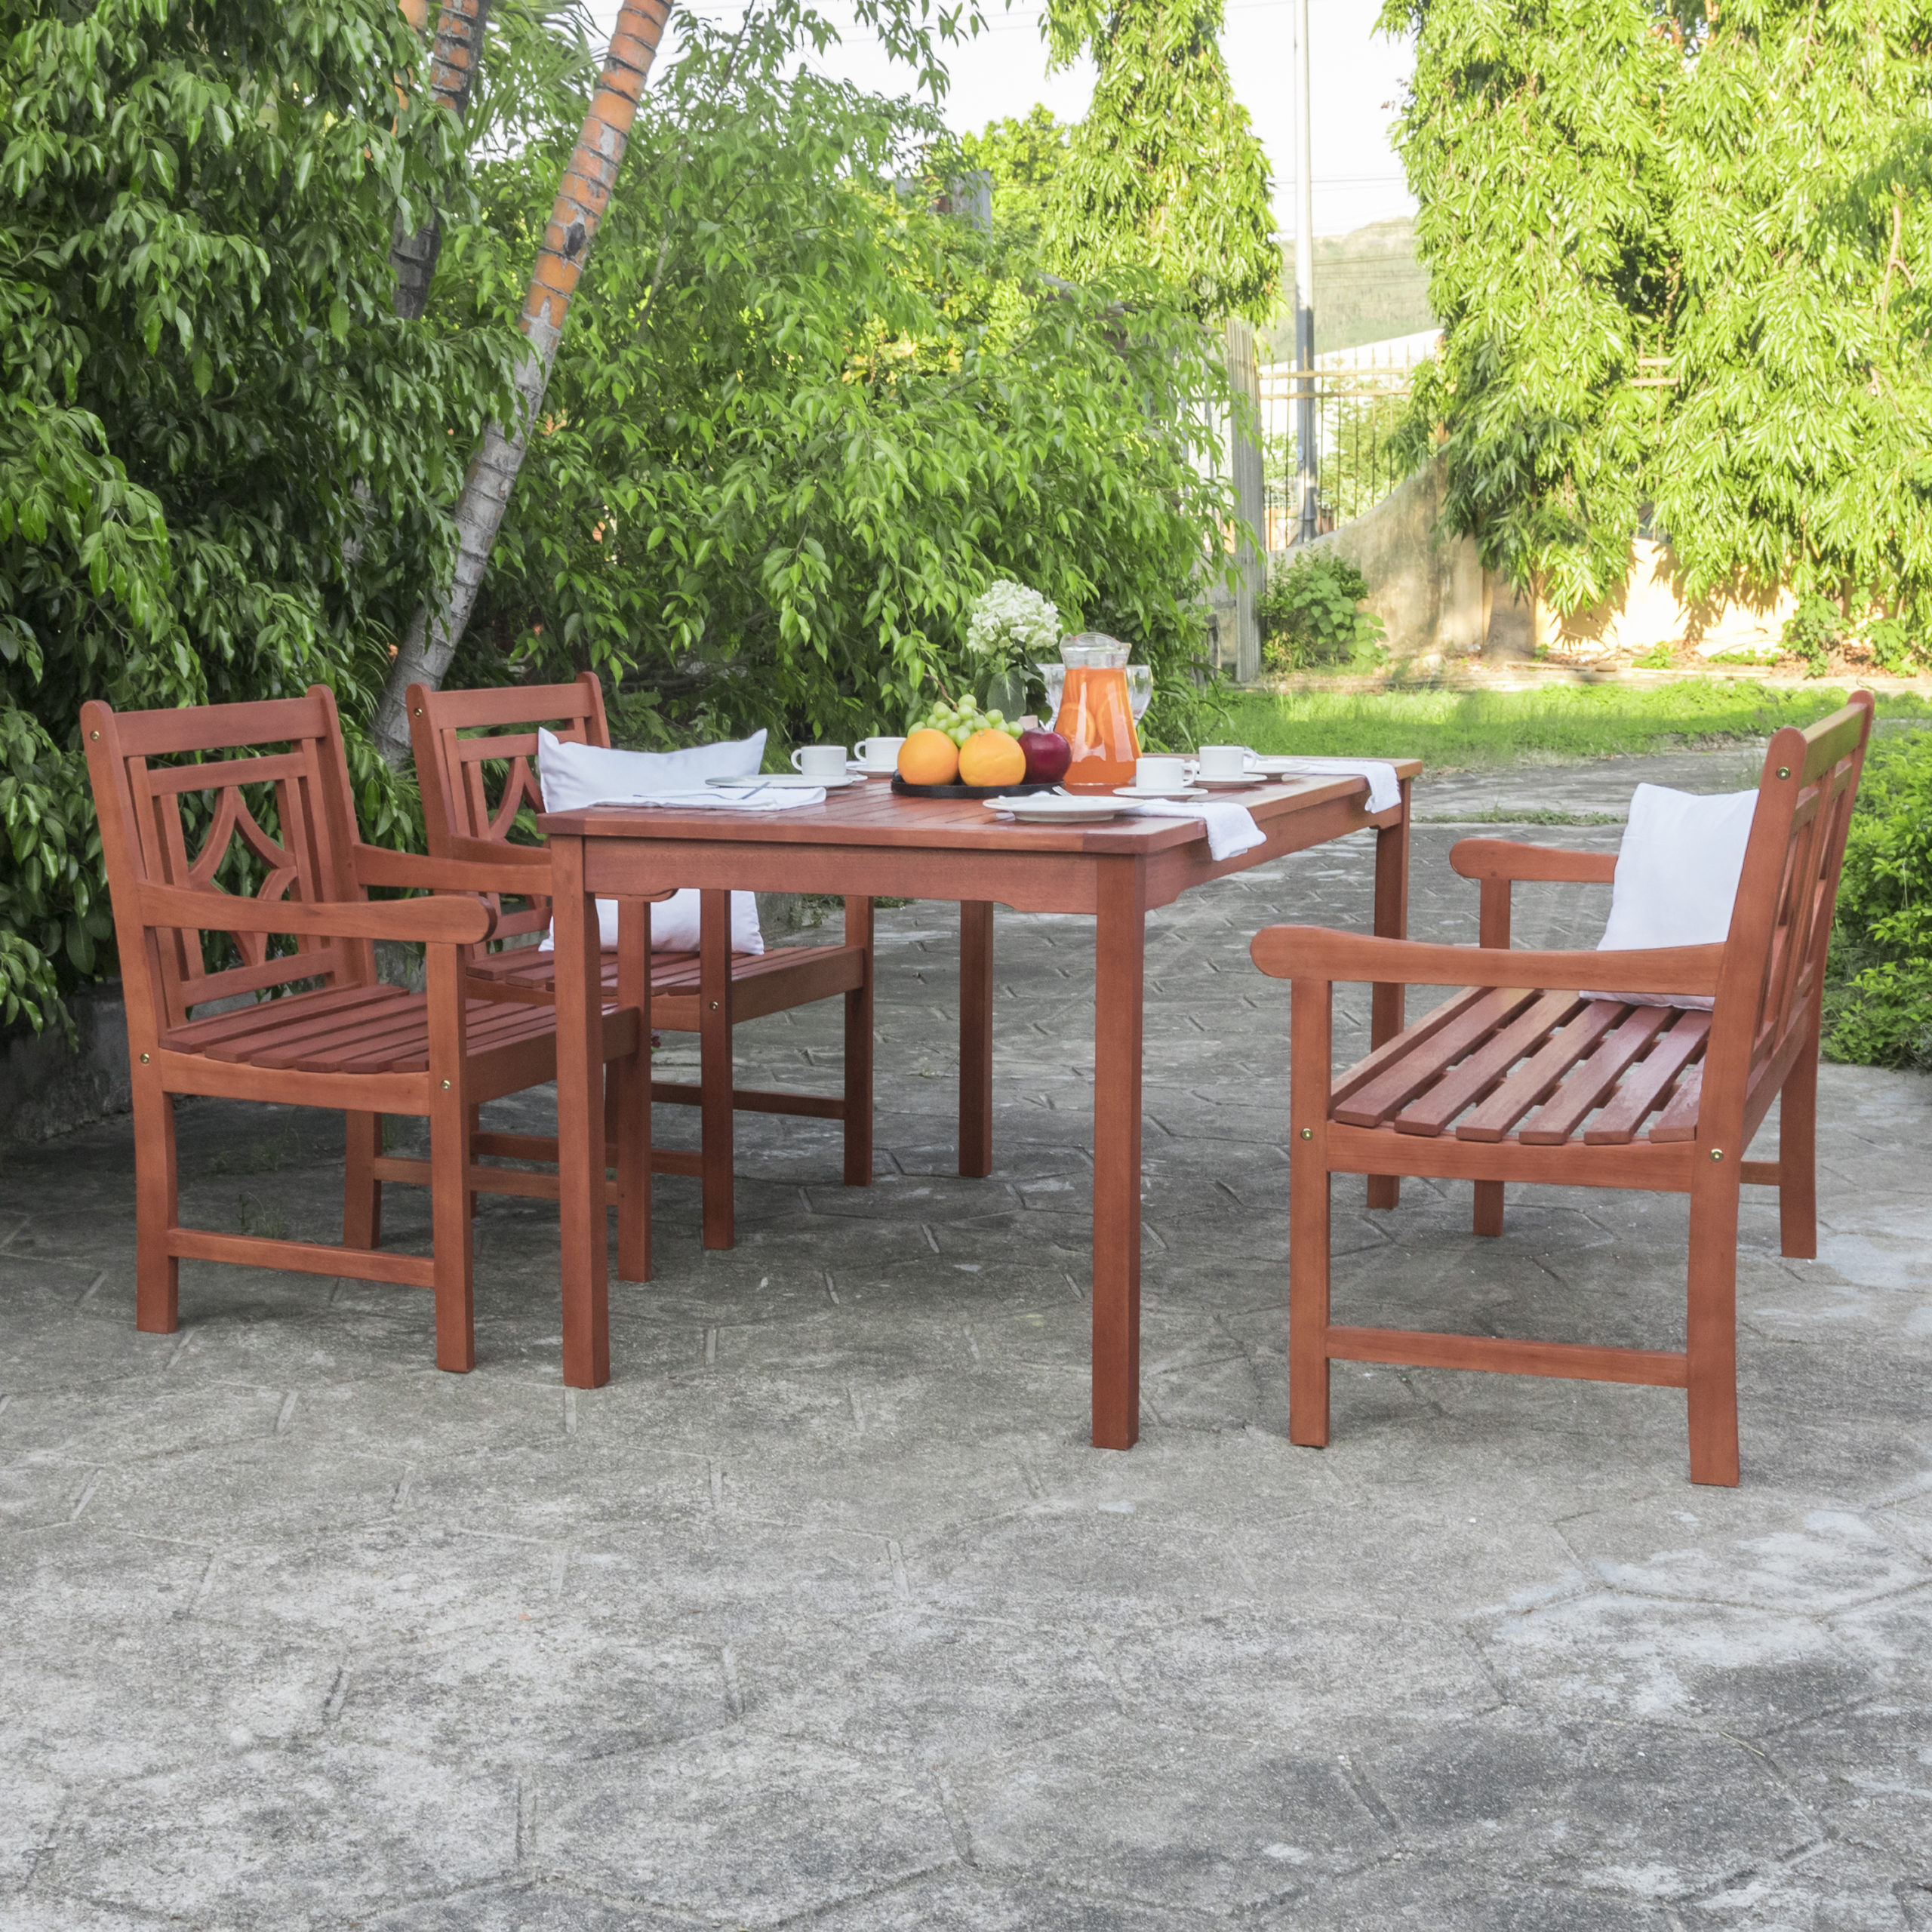 """Natural Wood – Malibu Outdoor 4 Piece Wood Patio Inside 2017 Elite Rectangle 48"""" L X 24"""" W Tables (Photo 13 of 15)"""